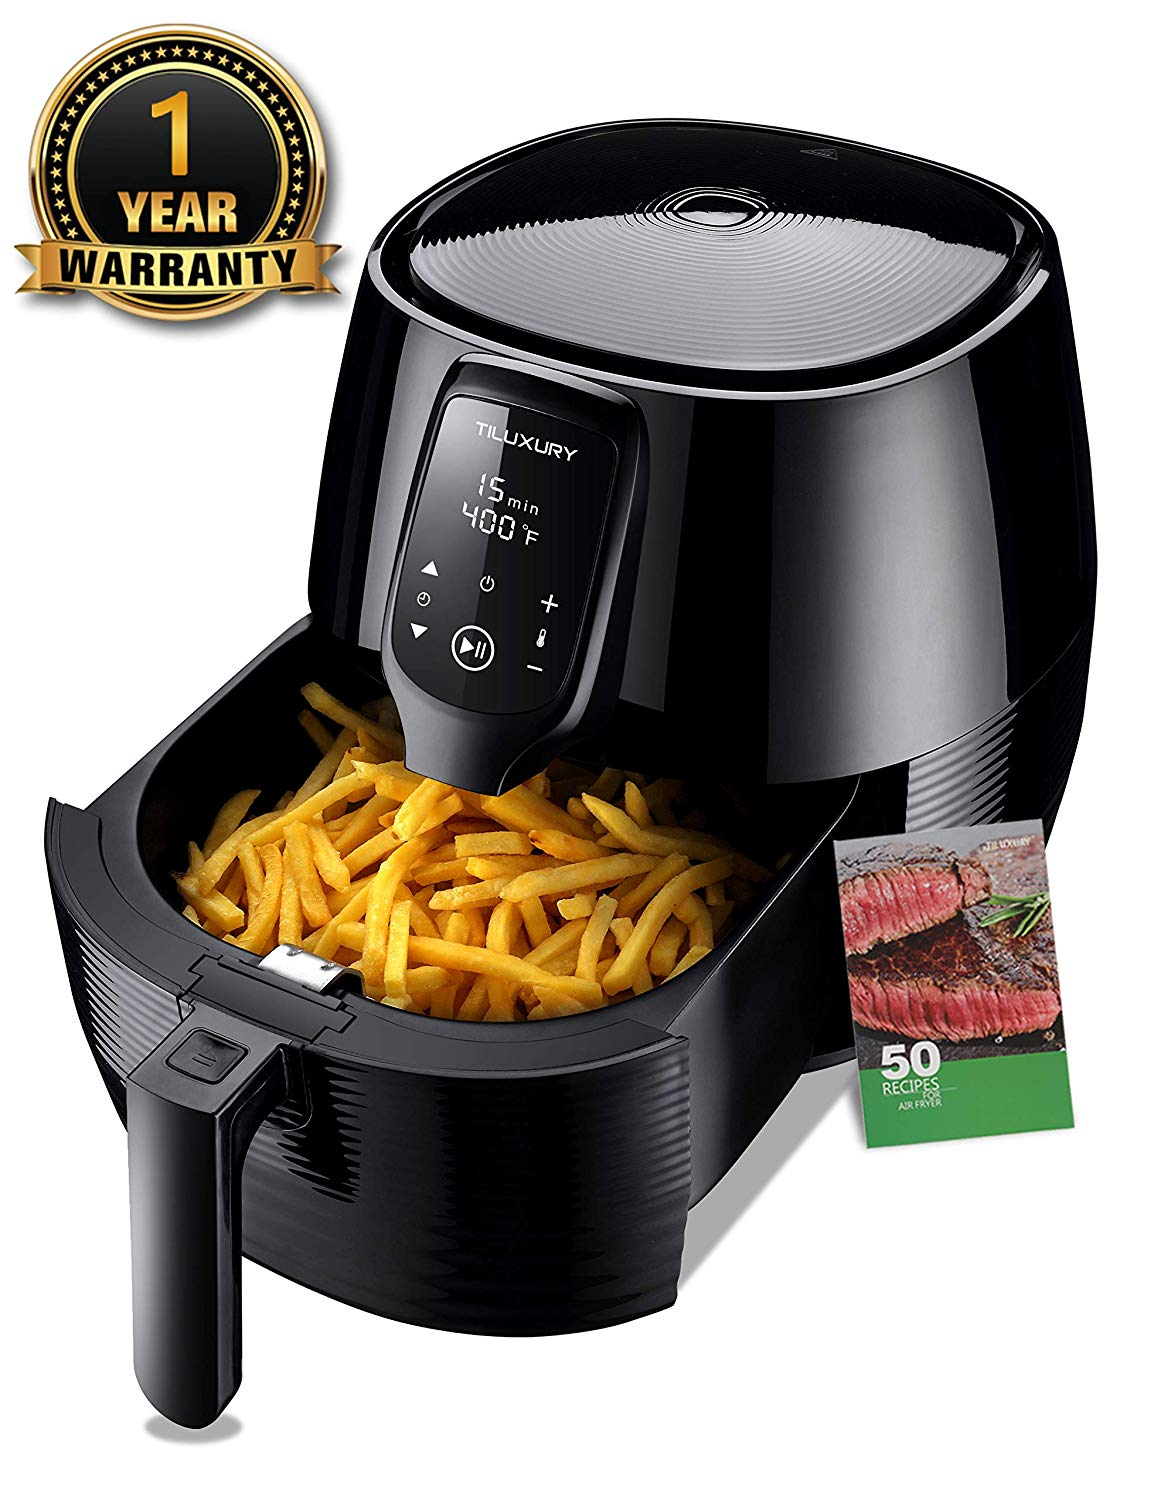 Air Fryer 5.8QT Electric Deep Air Fryer Less Fat Oil Free Healthy Cooker with Multi-function Dual Dial Timer Temperature Controls, Include 50 Recipes Book, BBQ Rack&Skewers and Pizza Pan, Black (5.8QT LED)